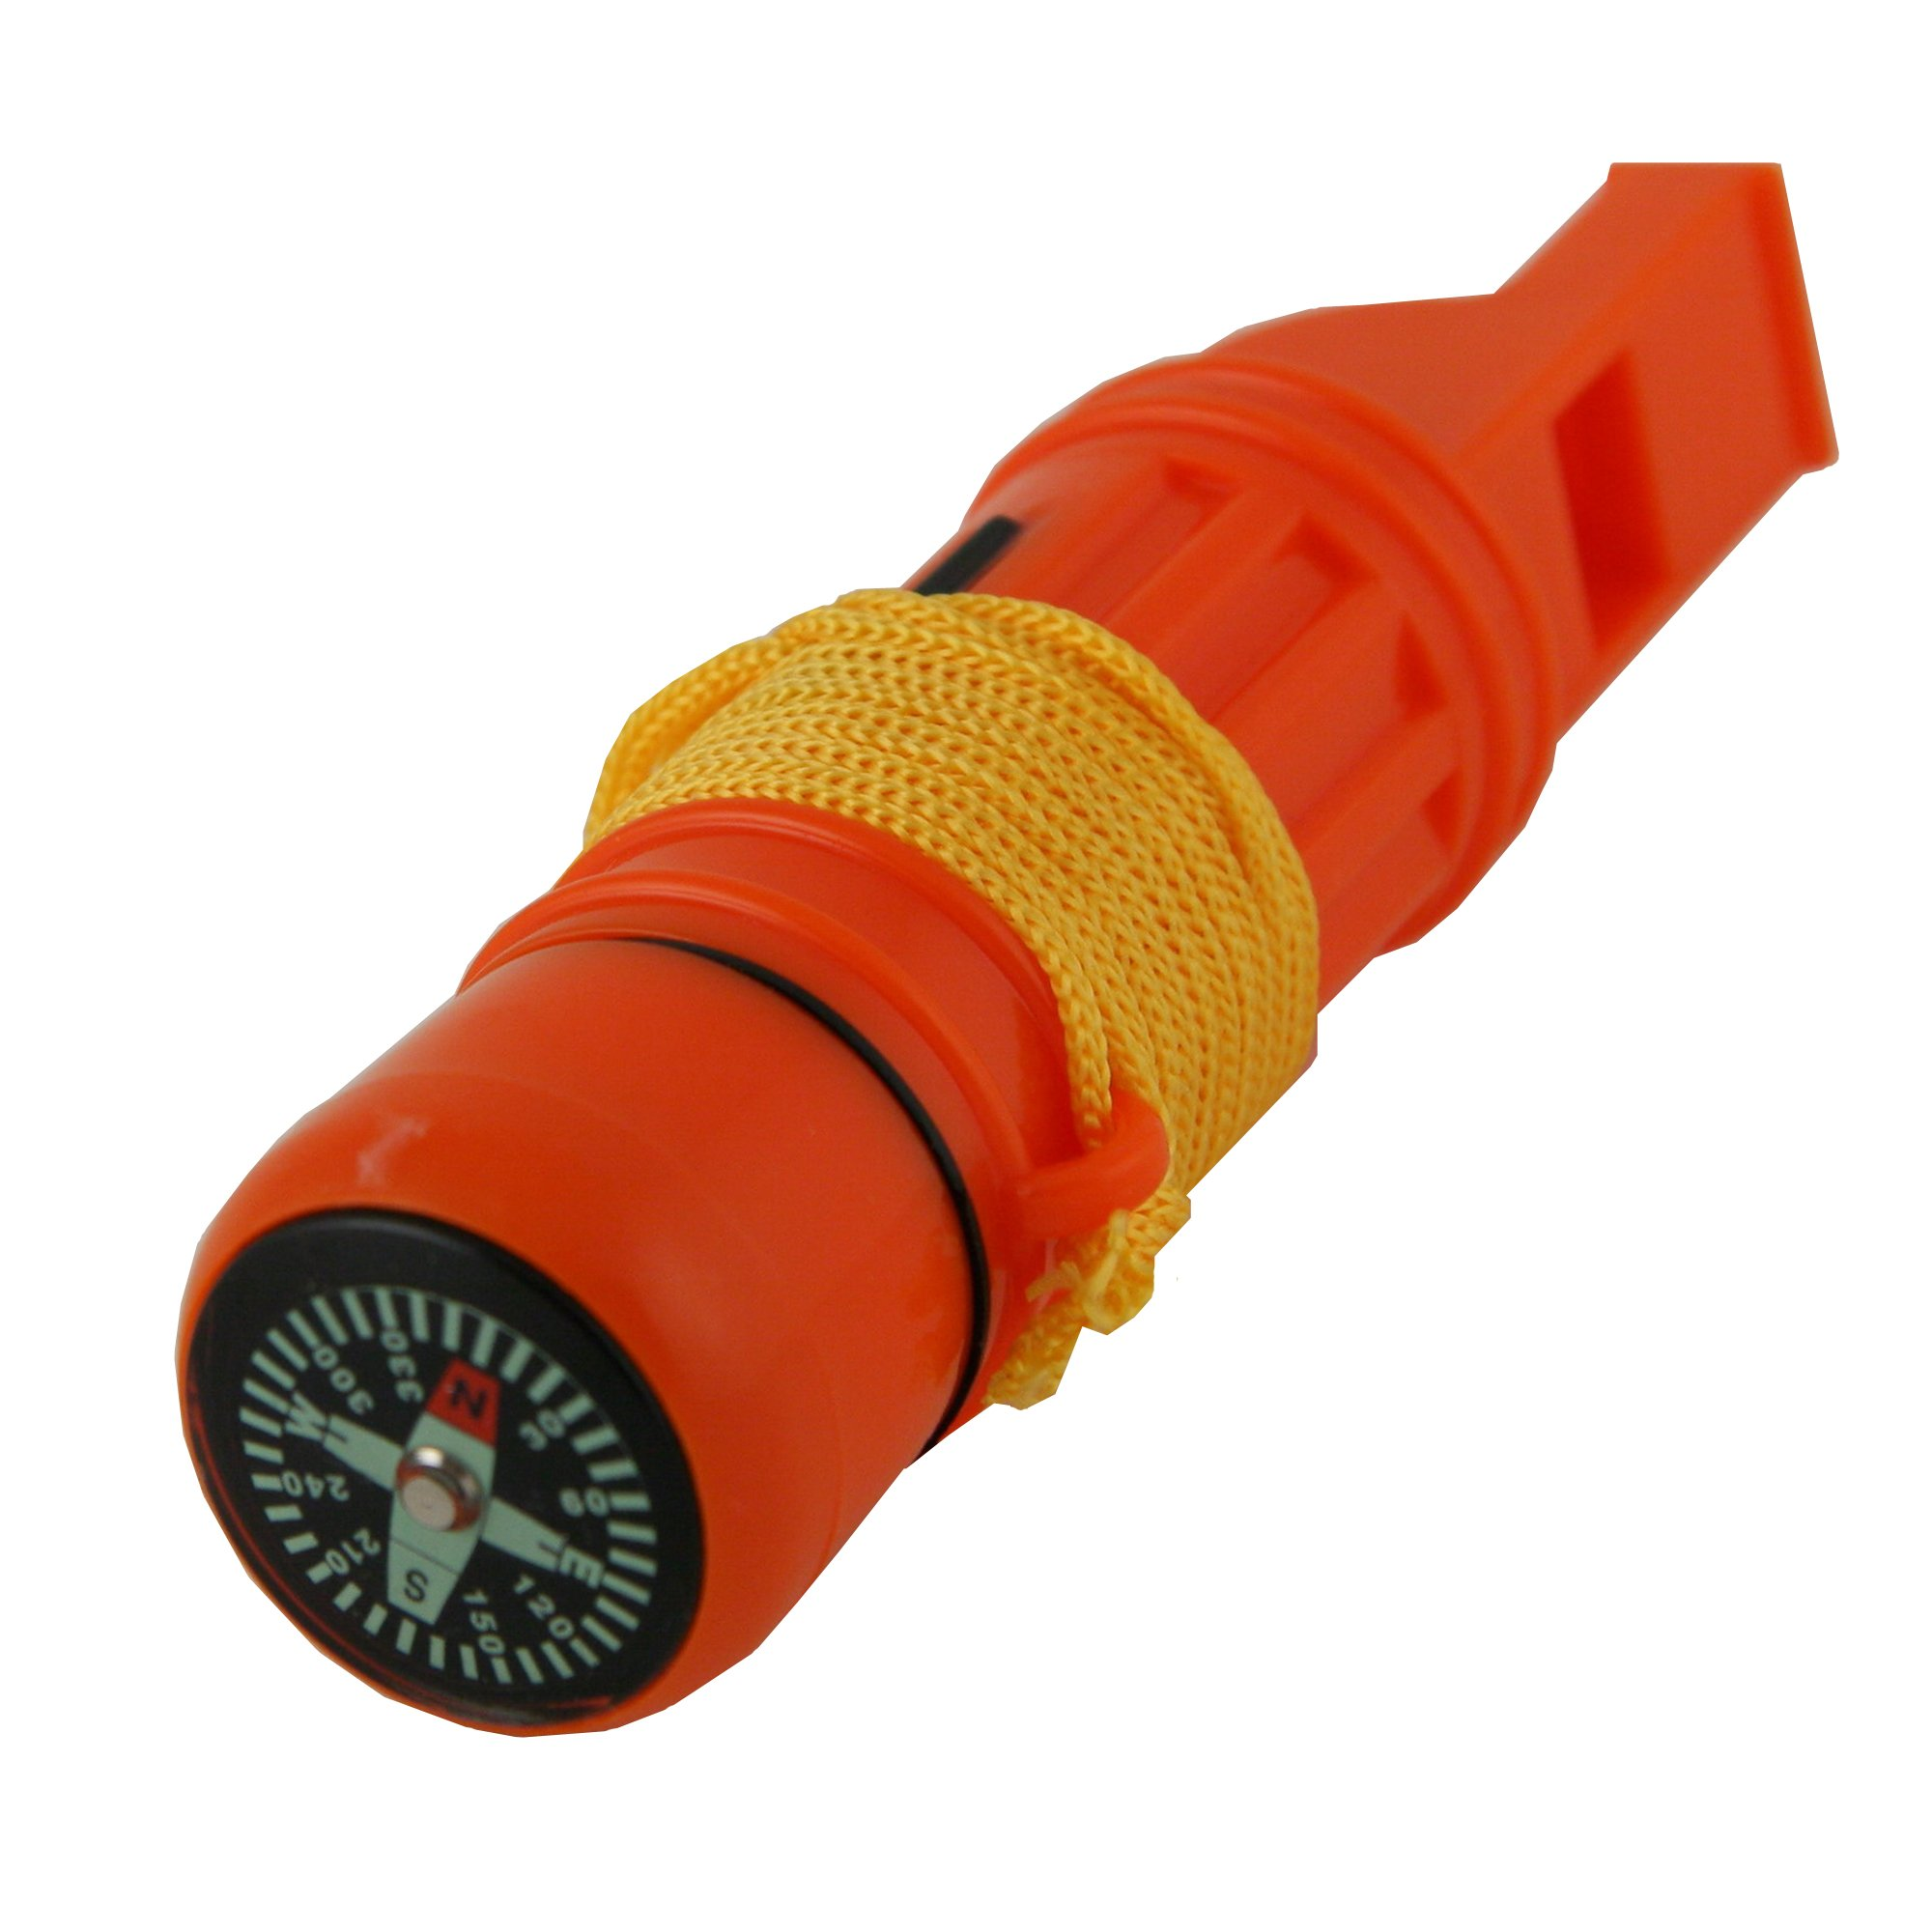 Emergency Zone 5 in 1 Survival Whistle. Compass, Whistle, Water-Resistant Container, Signal Mirror, Ferro Rod. 1 Pack